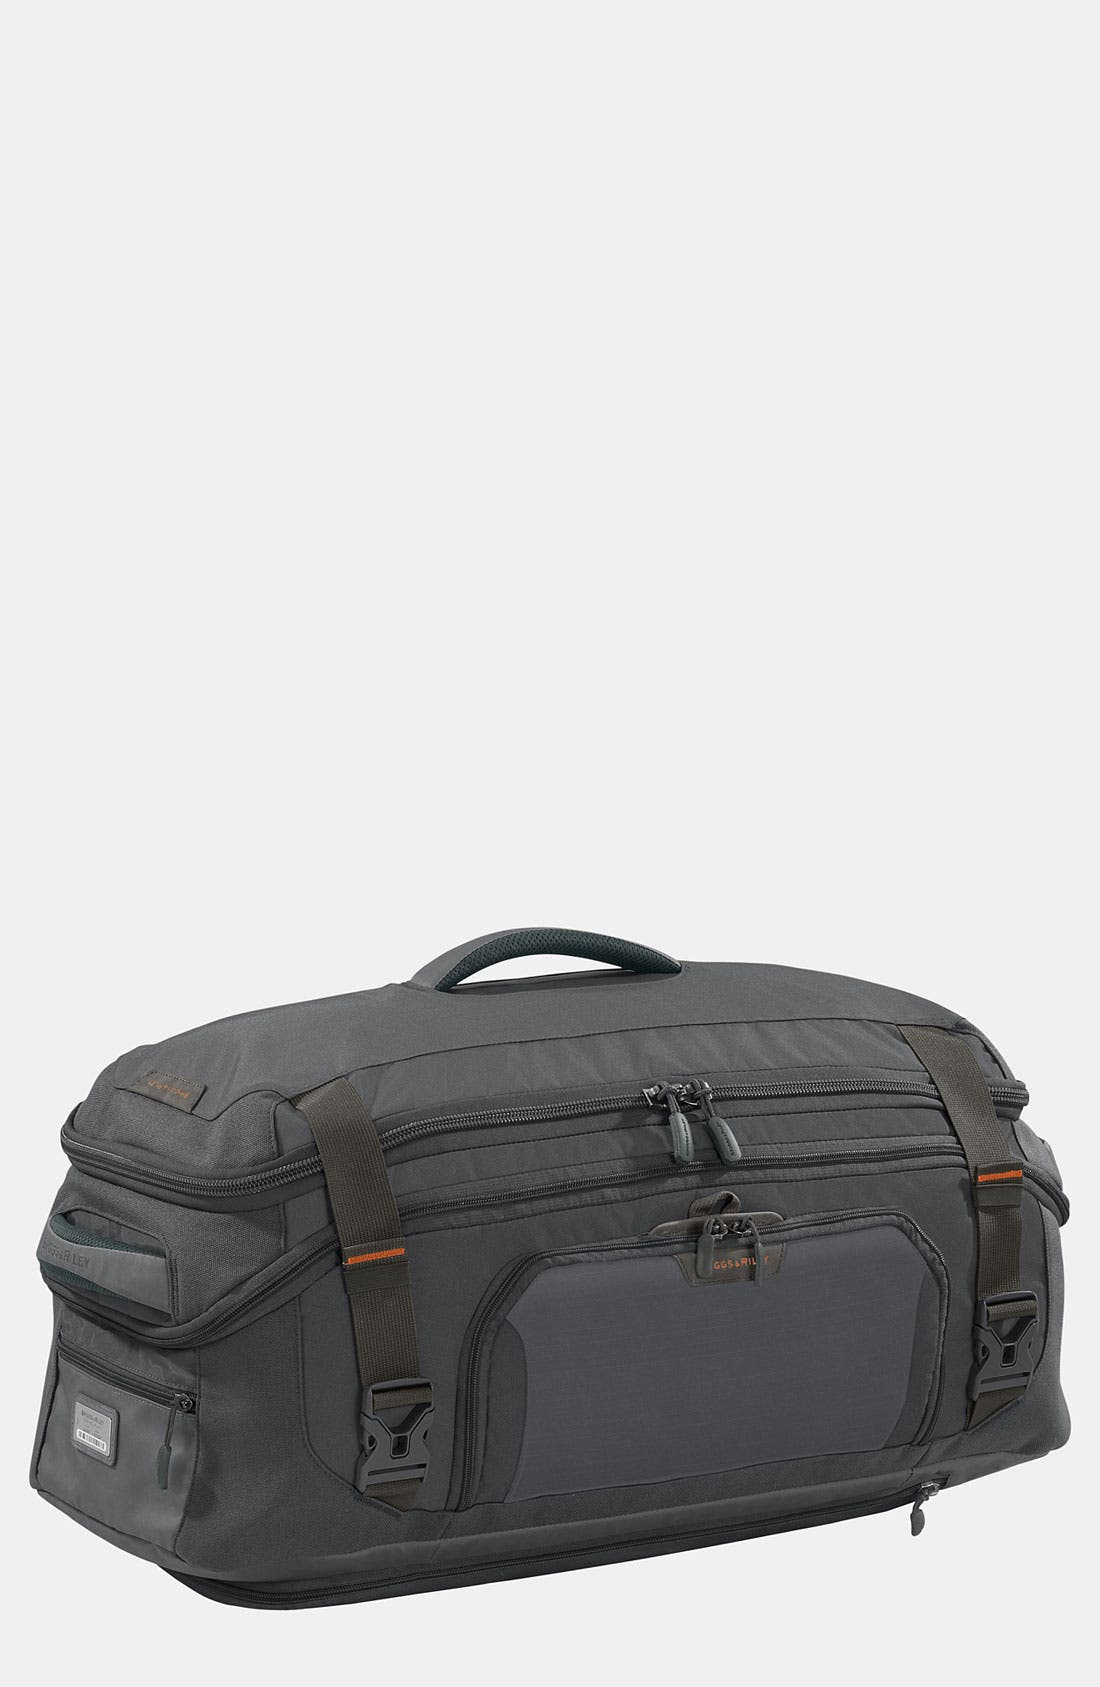 Alternate Image 1 Selected - Briggs & Riley 'Exchange' Expandable Duffel Bag (26 inch)